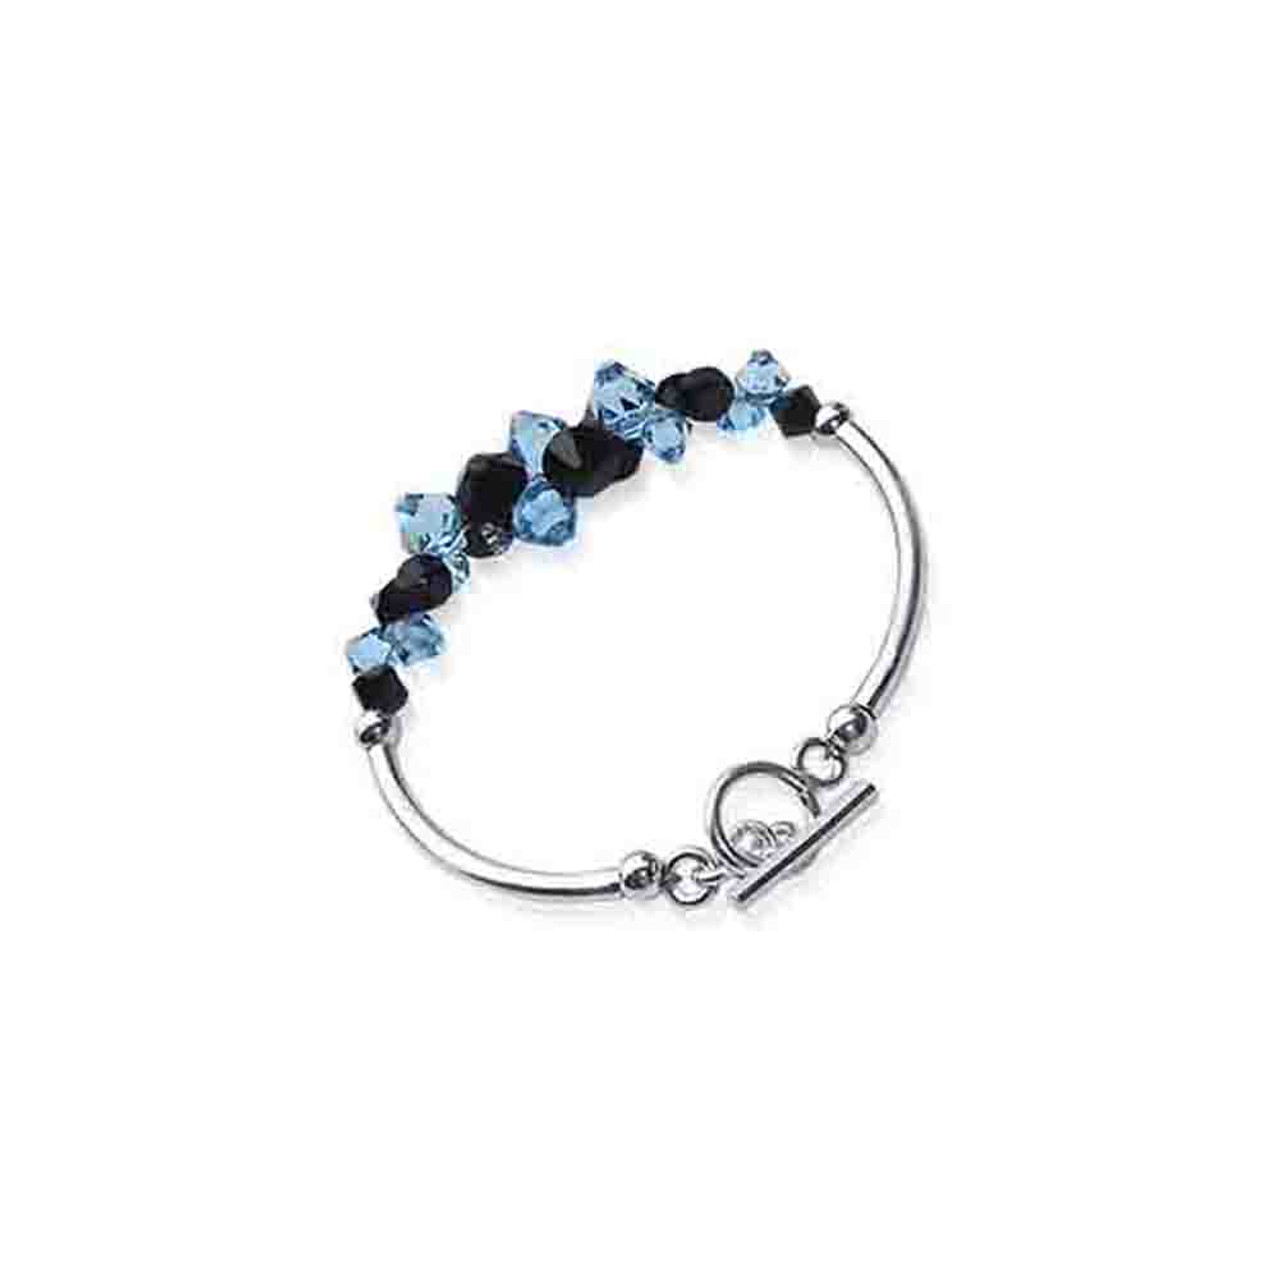 Cluster Swarovski Elements Blue & Black Crystal 7.5 inch Bracelet